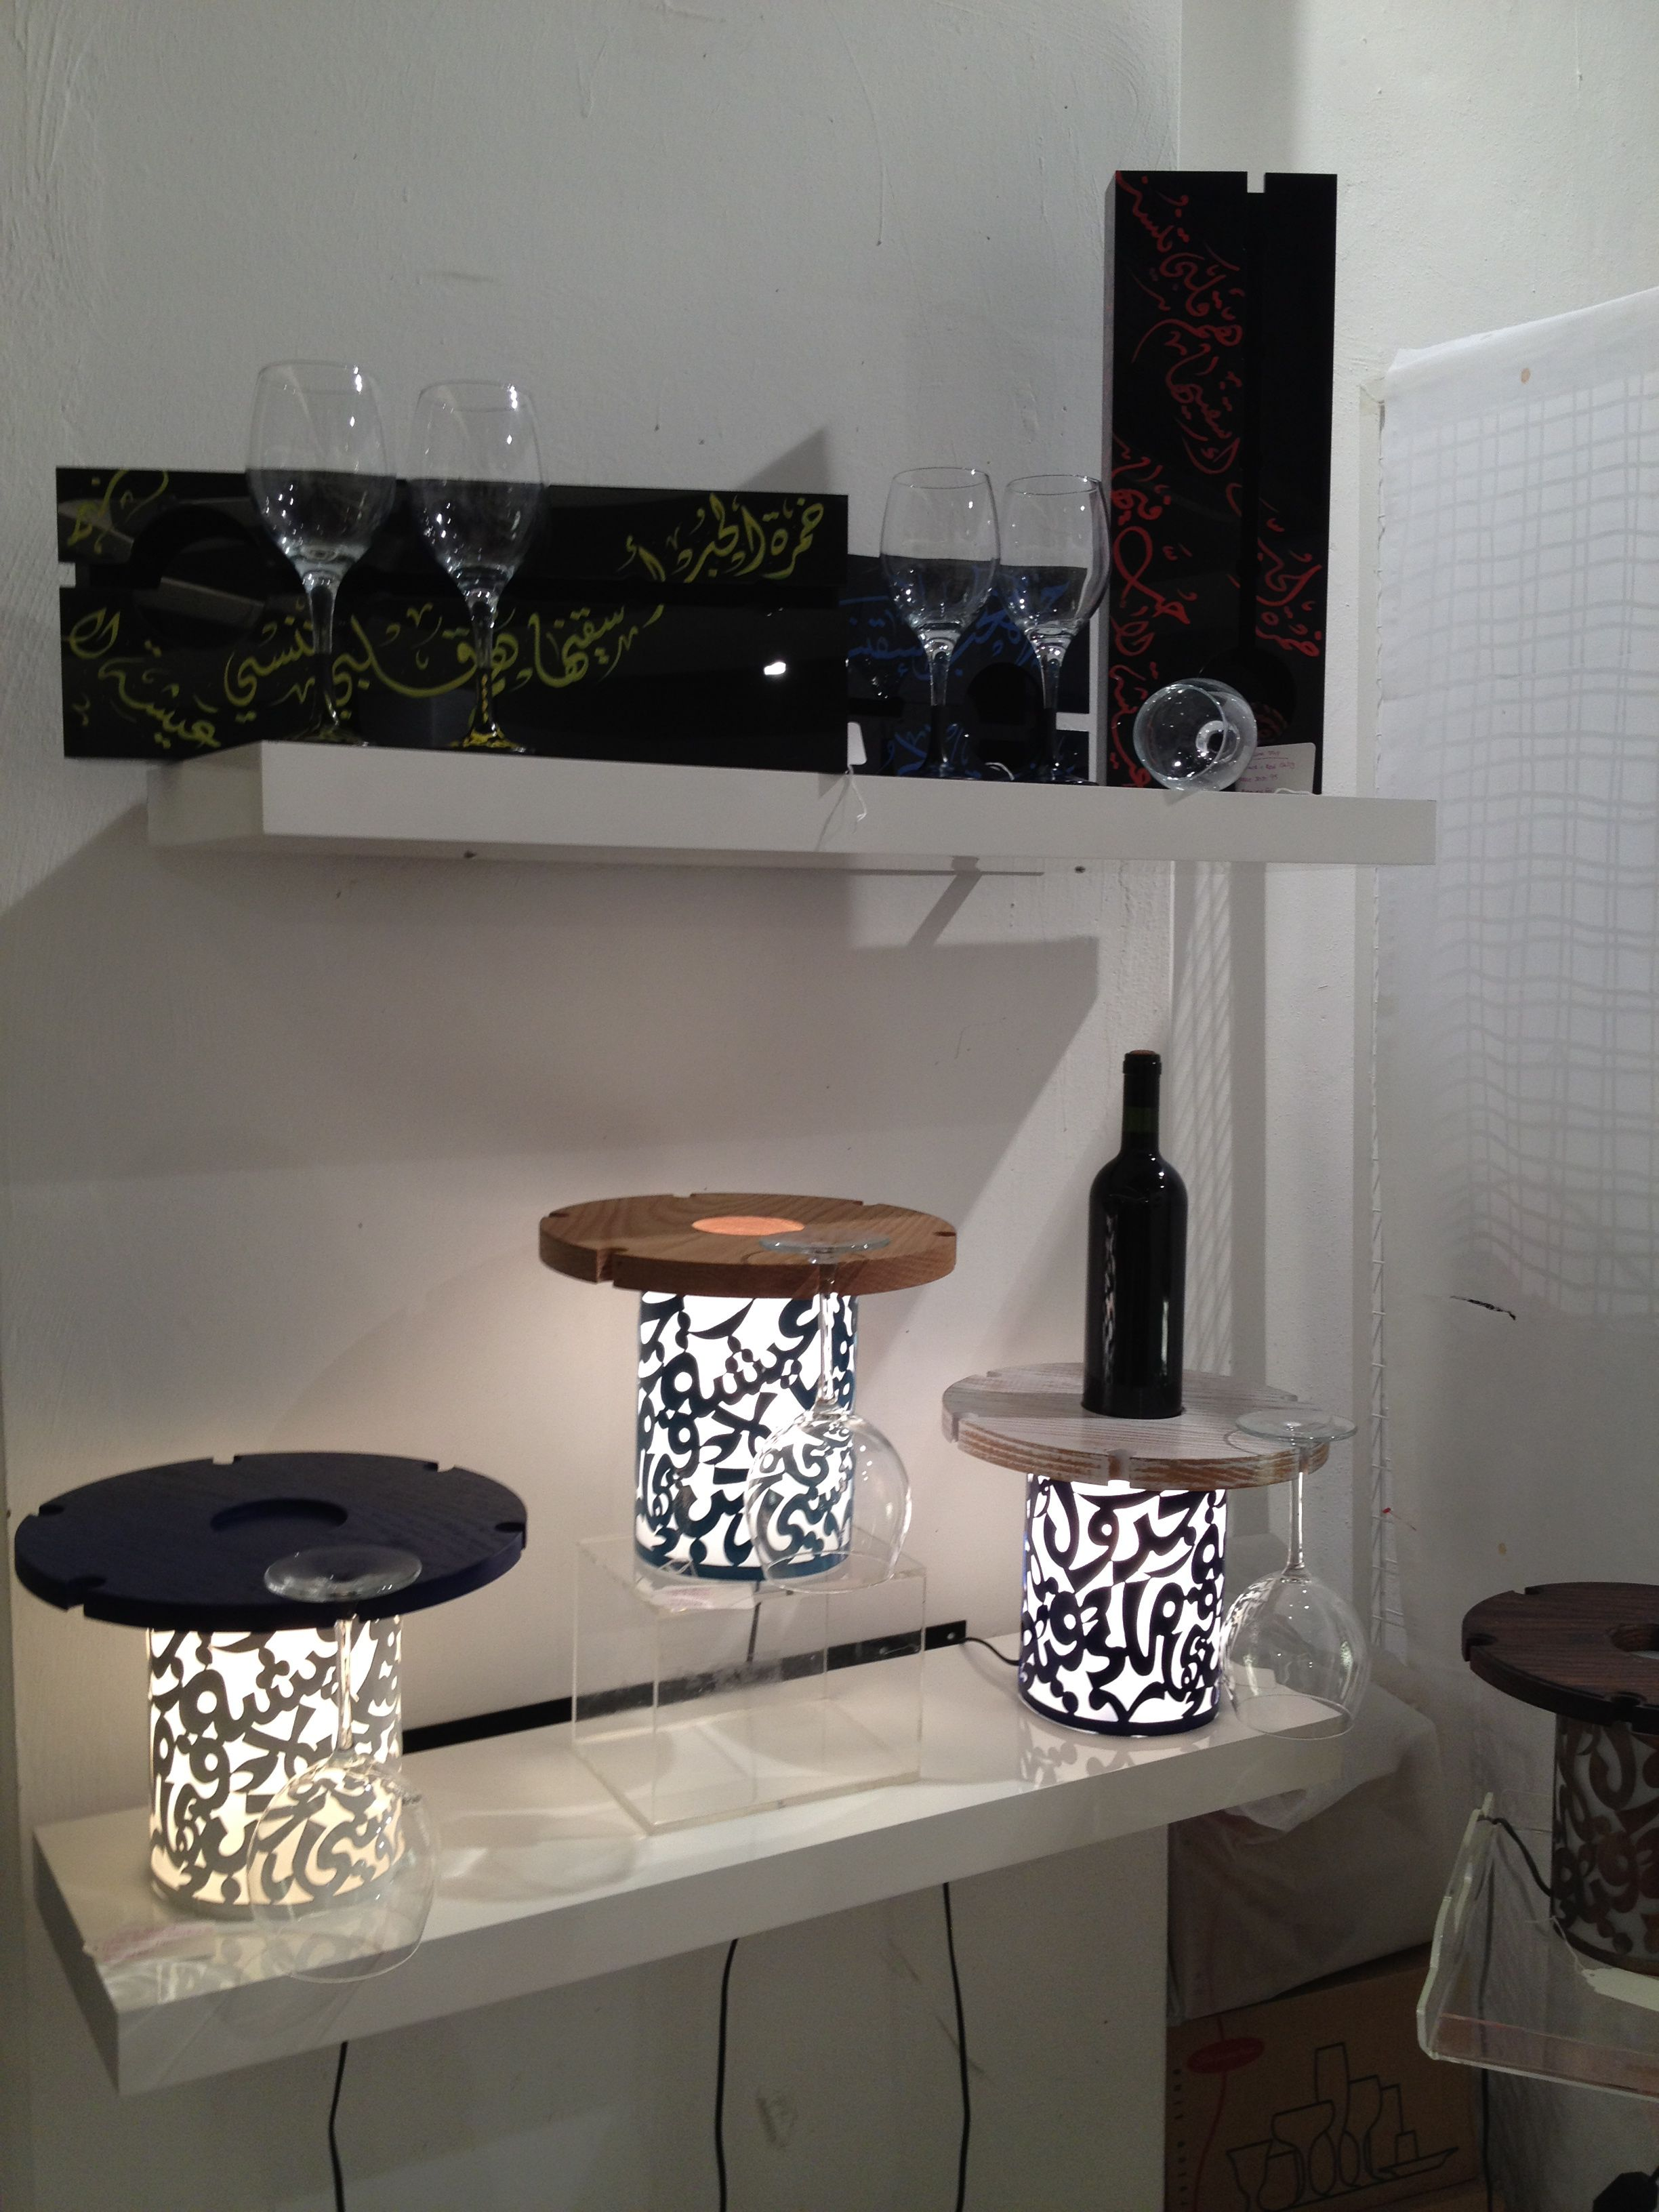 Hand Made Wine Table With A Light And Arabic Calligraphy